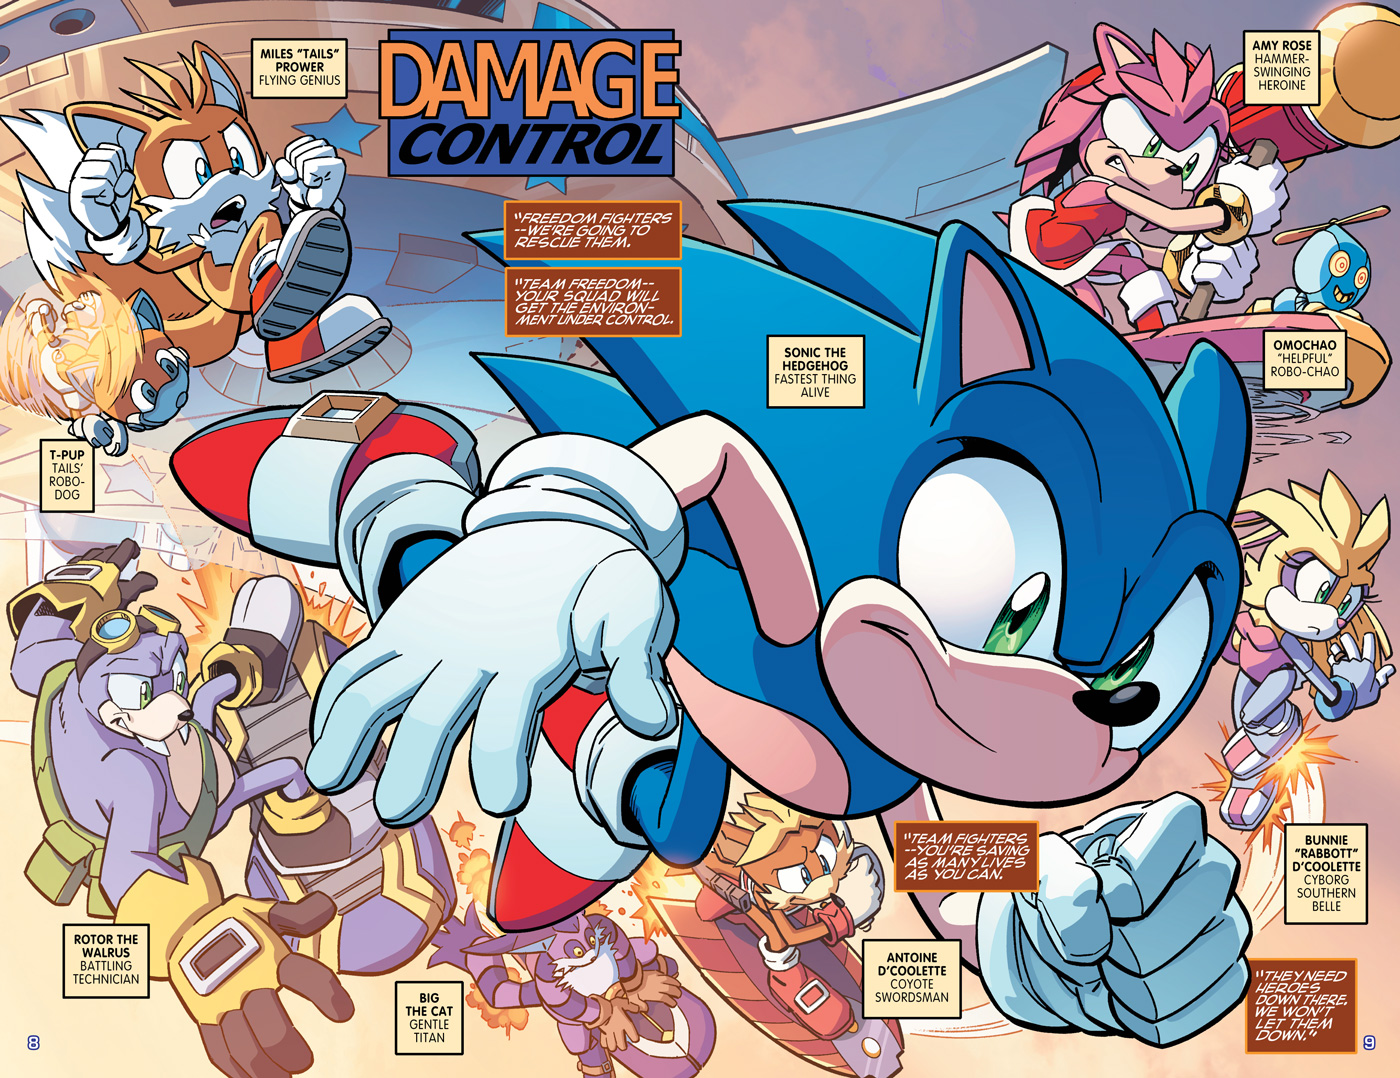 SonicTheHedgehogVol2_TheChase-9-10